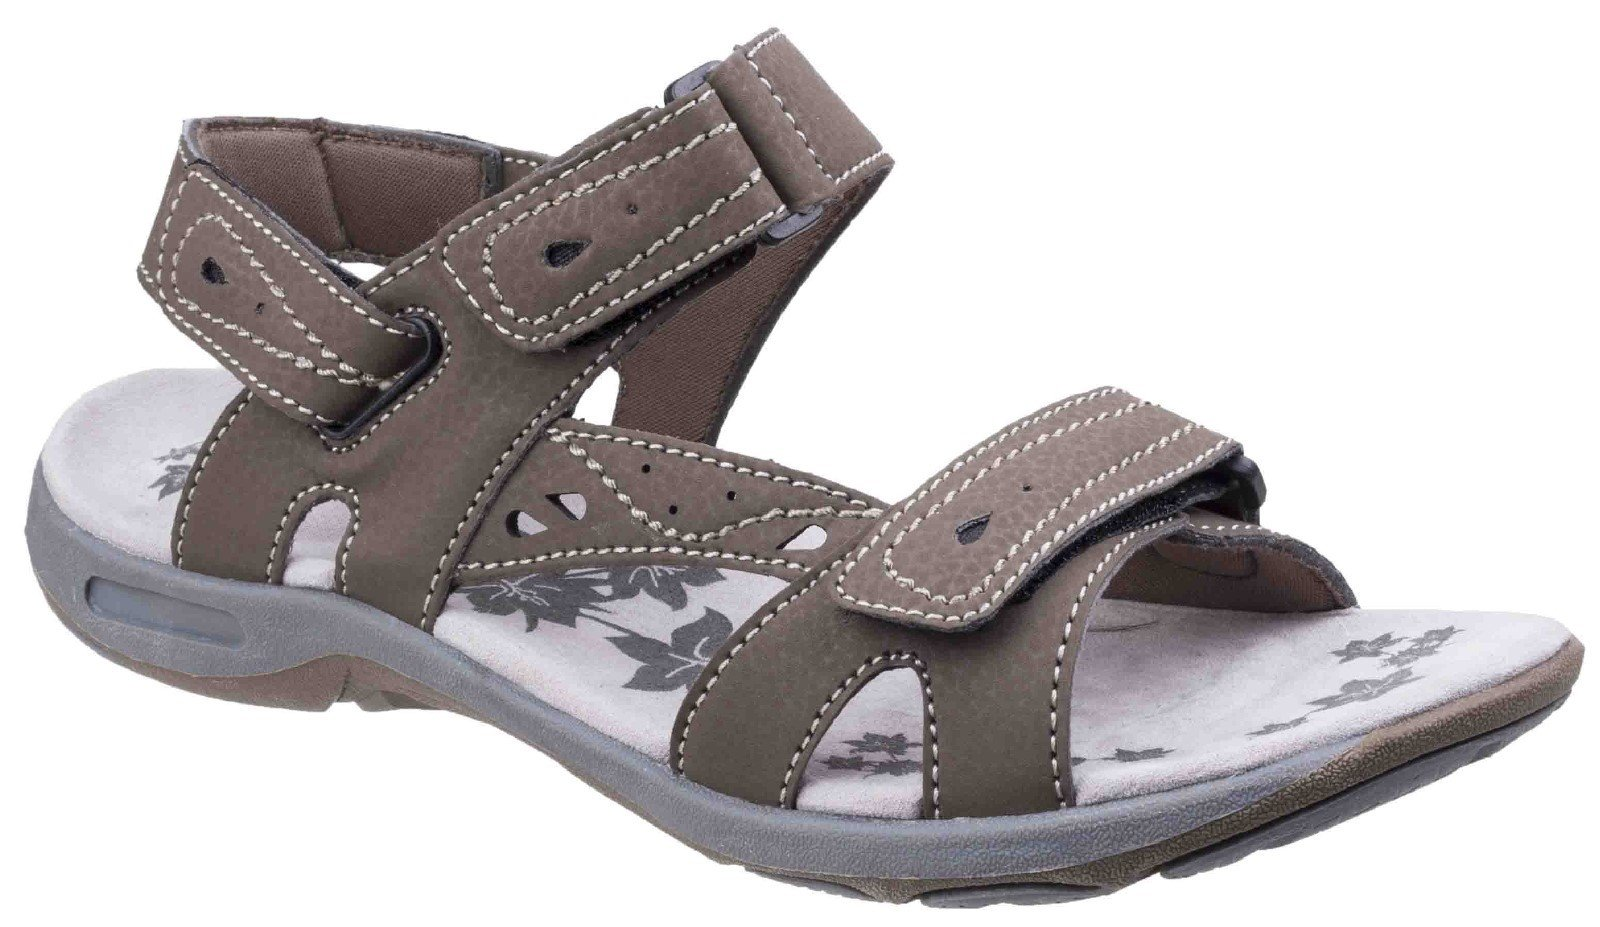 Cotswold Women's Highworth Sandal Various Colours 26264 - Brown 3